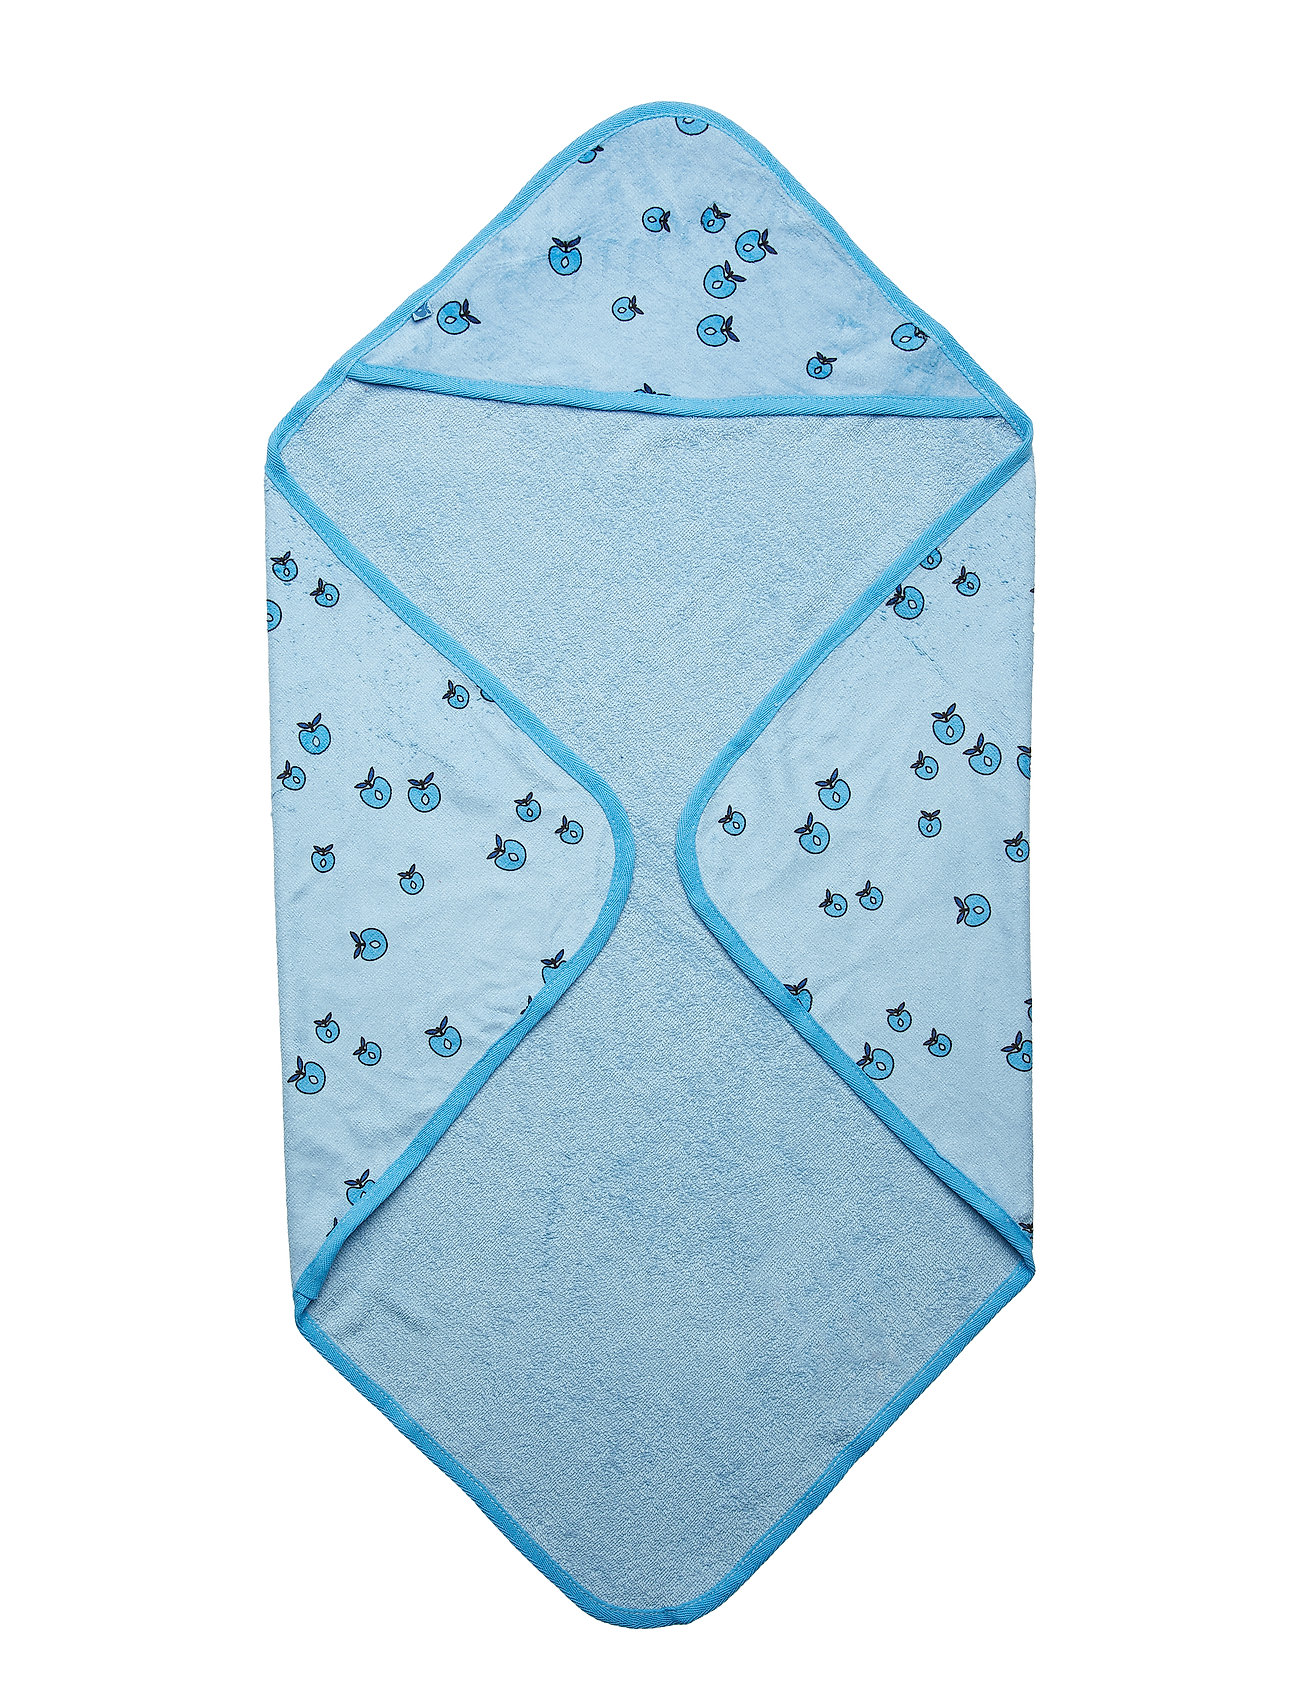 Småfolk Baby Towels, Apple. Originals. - AIR BLUE